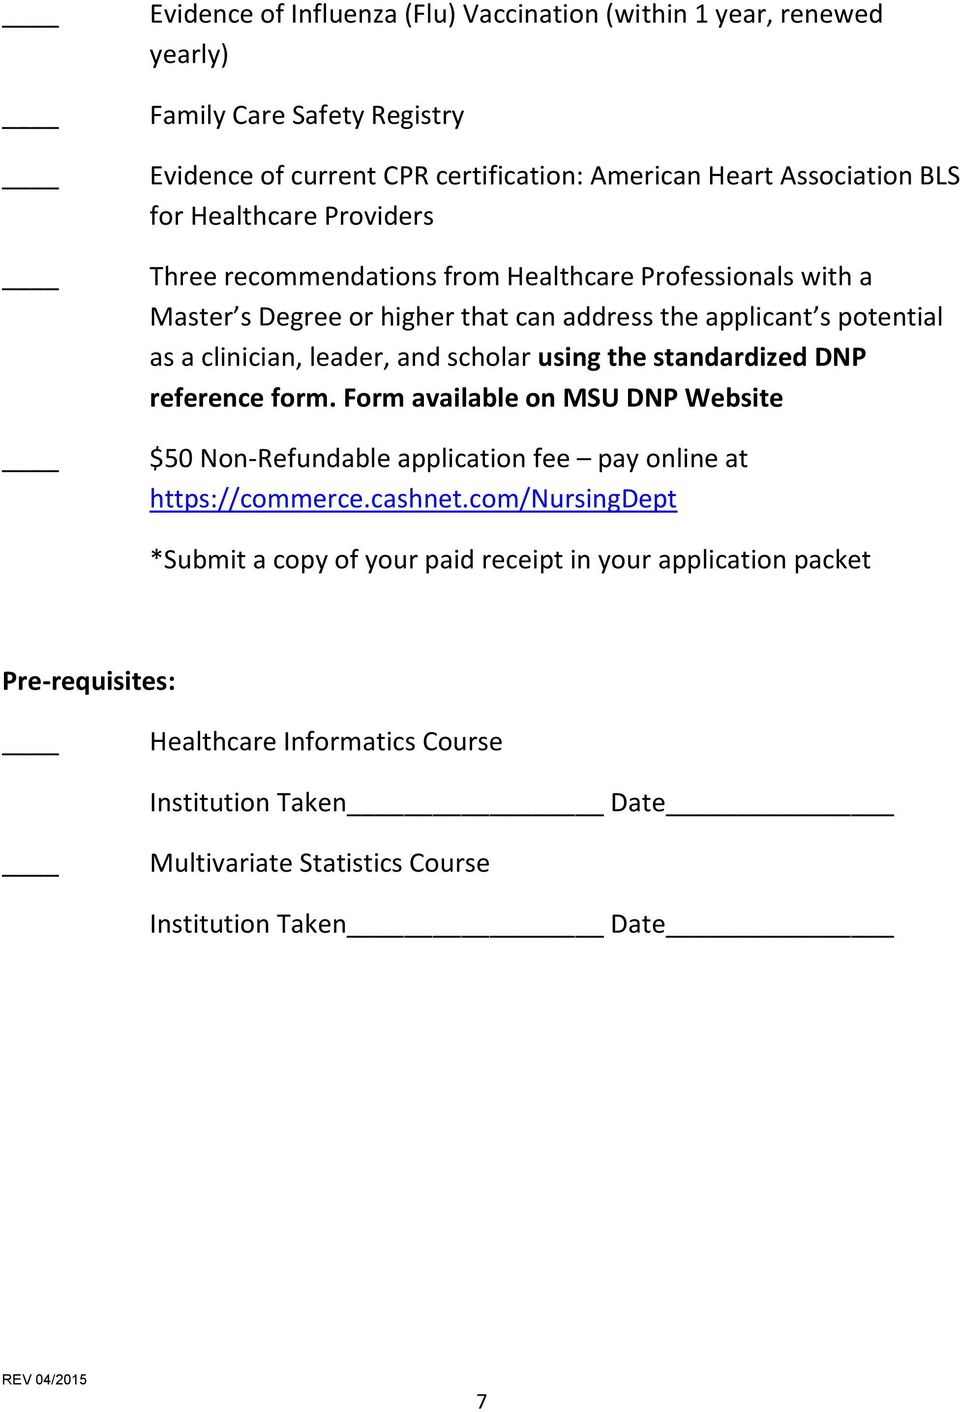 scholar using the standardized DNP reference form. Form available on MSU DNP Website $50 Non-Refundable application fee pay online at https://commerce.cashnet.